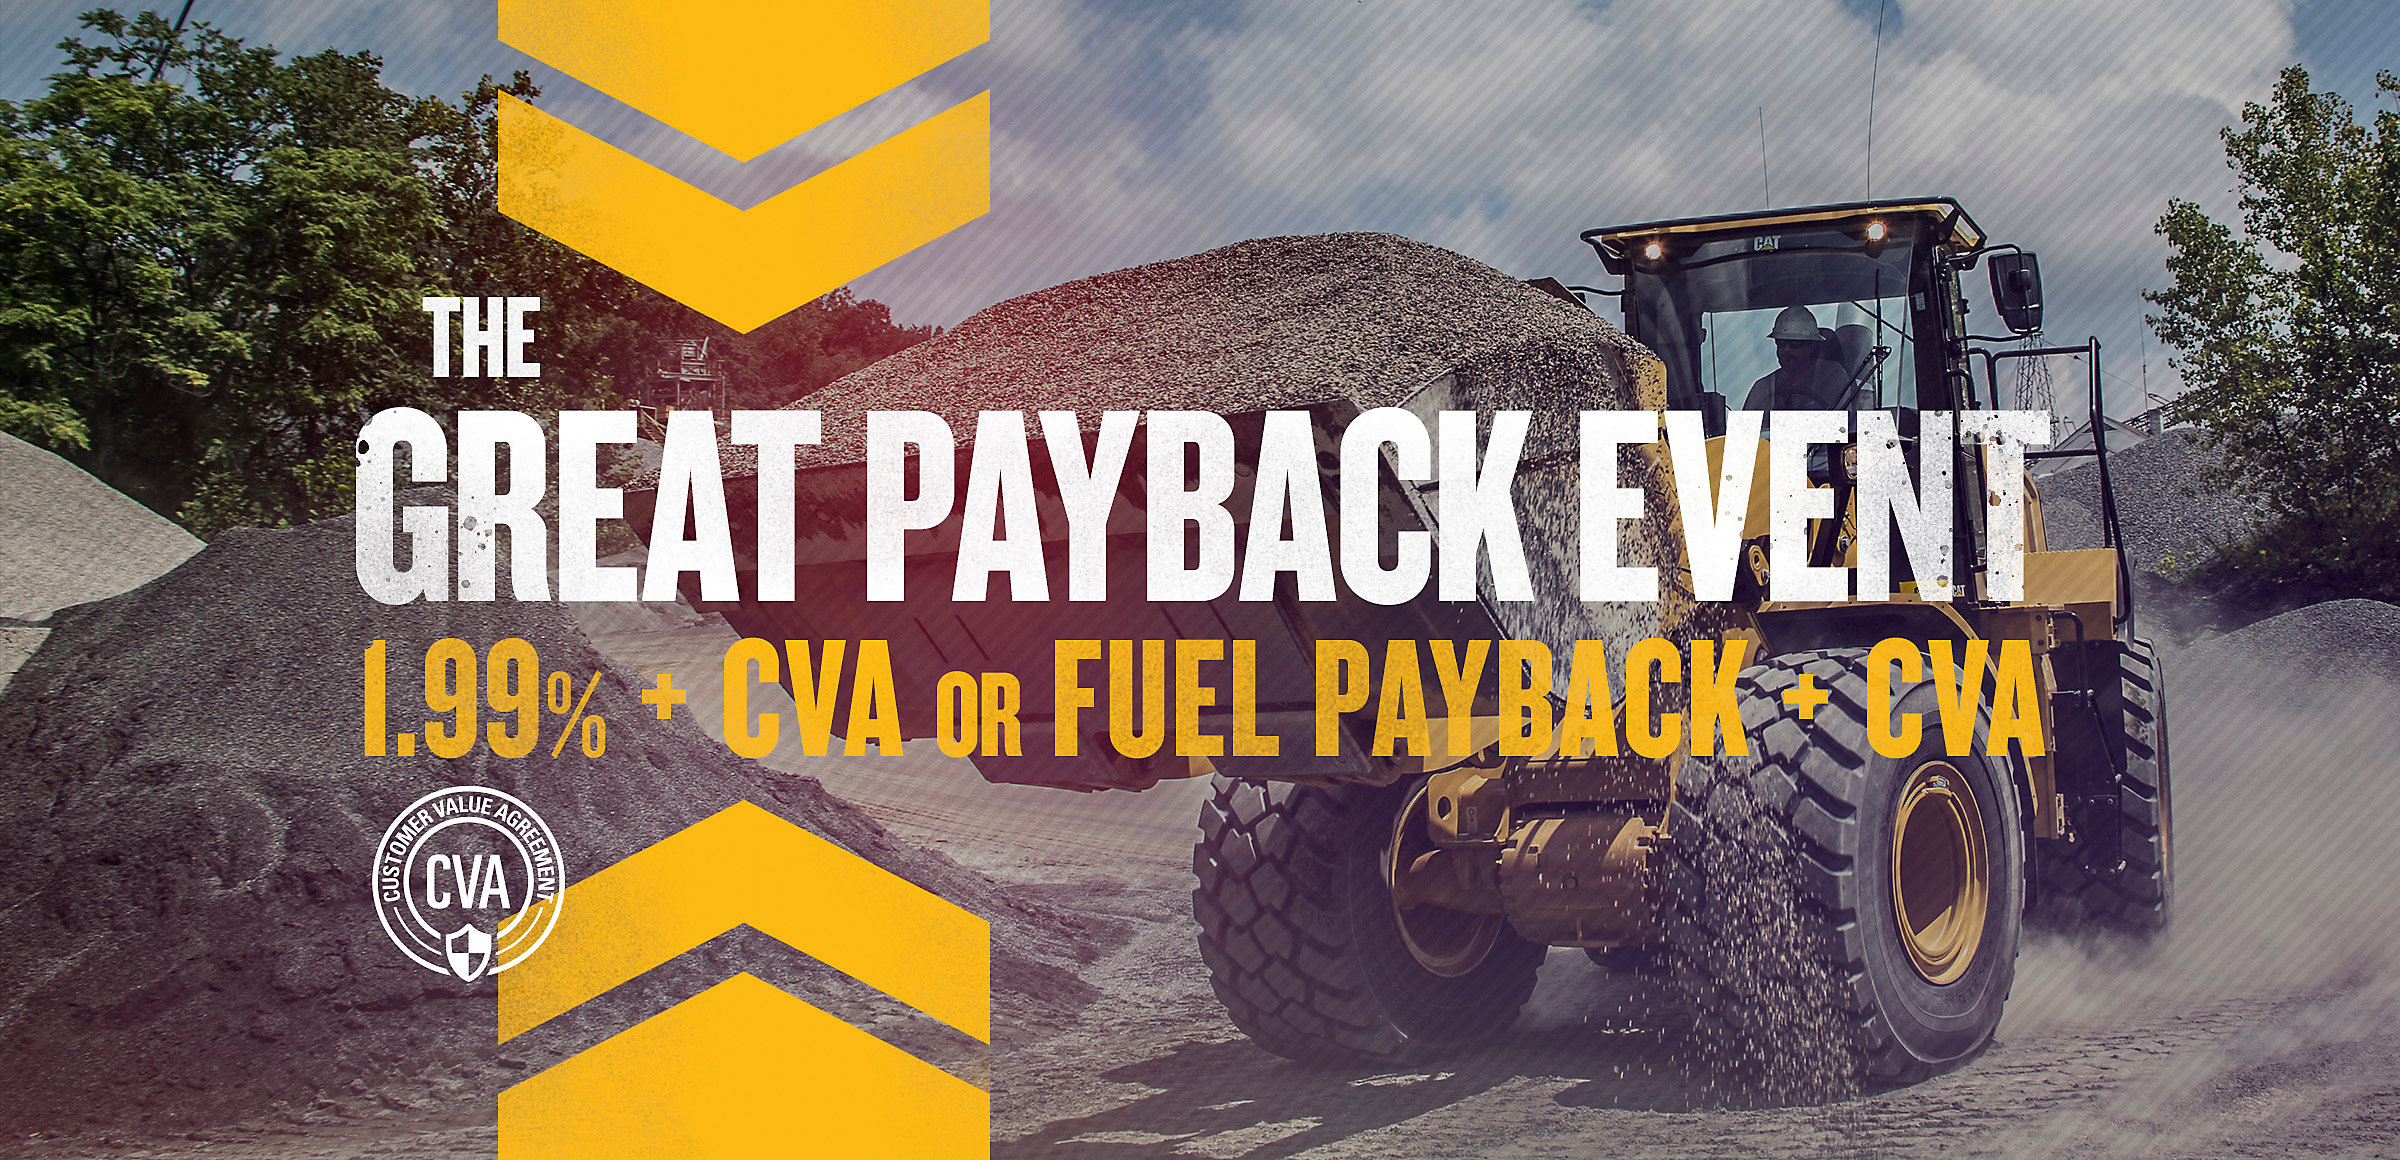 Great Payback Event